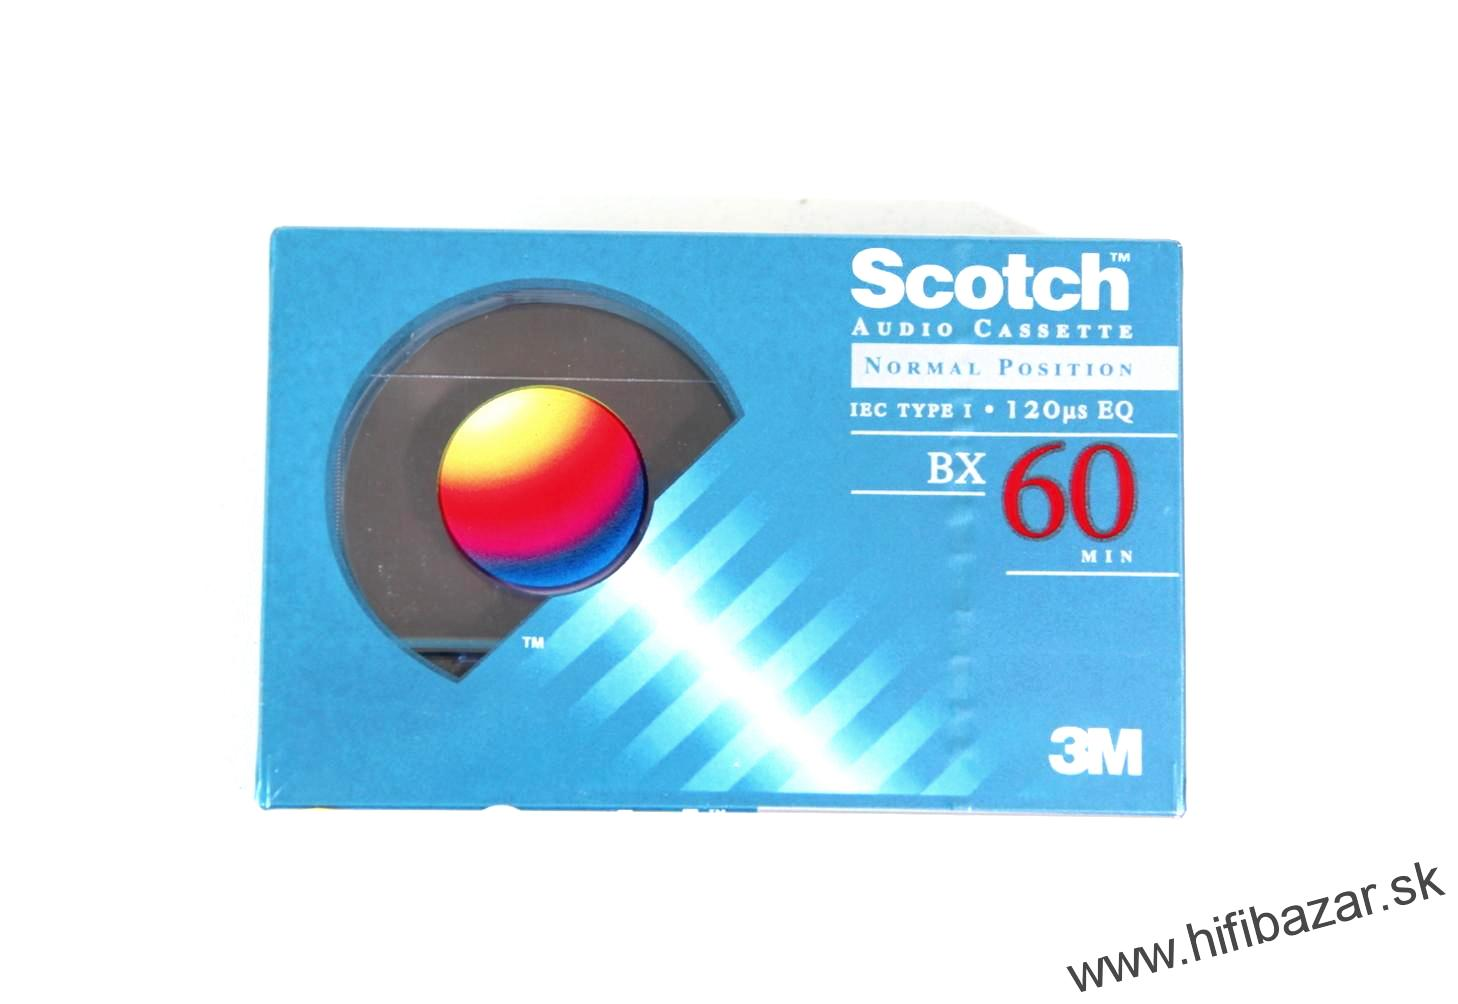 SCOTCH BX-60 Position Normal